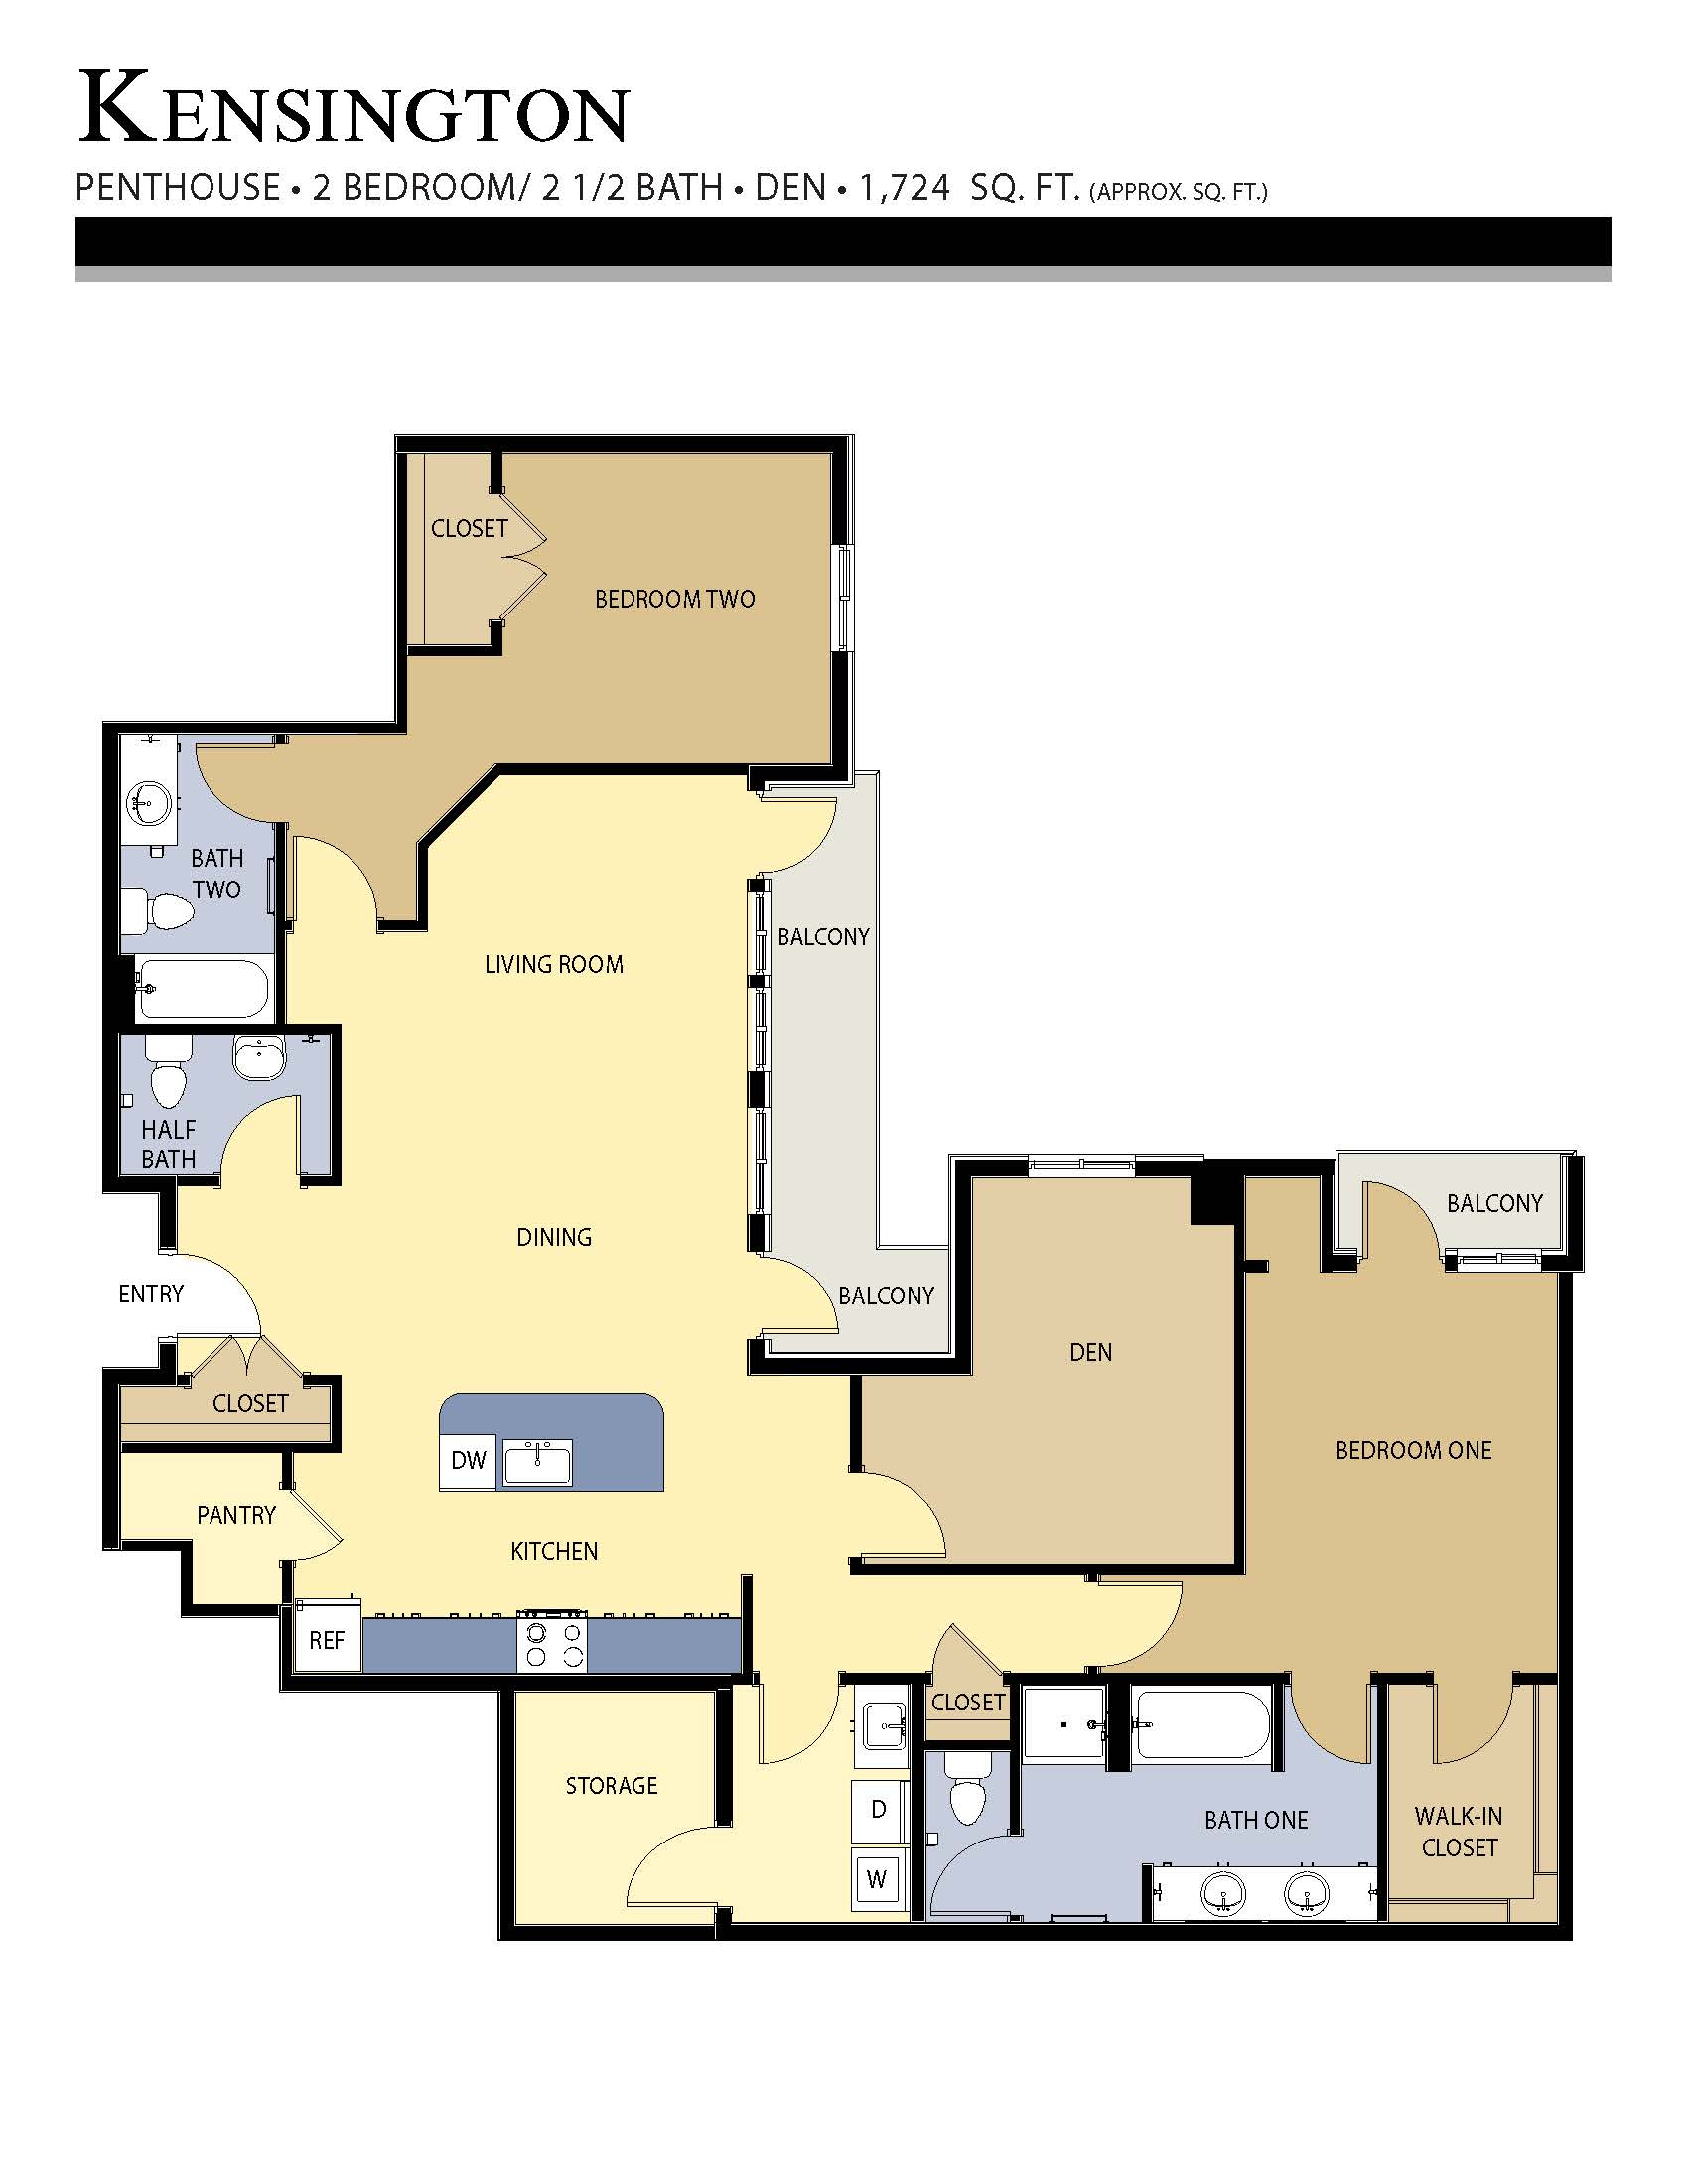 kensington floor plan - 2 Bed w/ Den / 2.5 Bath (1,724 Sq Ft)